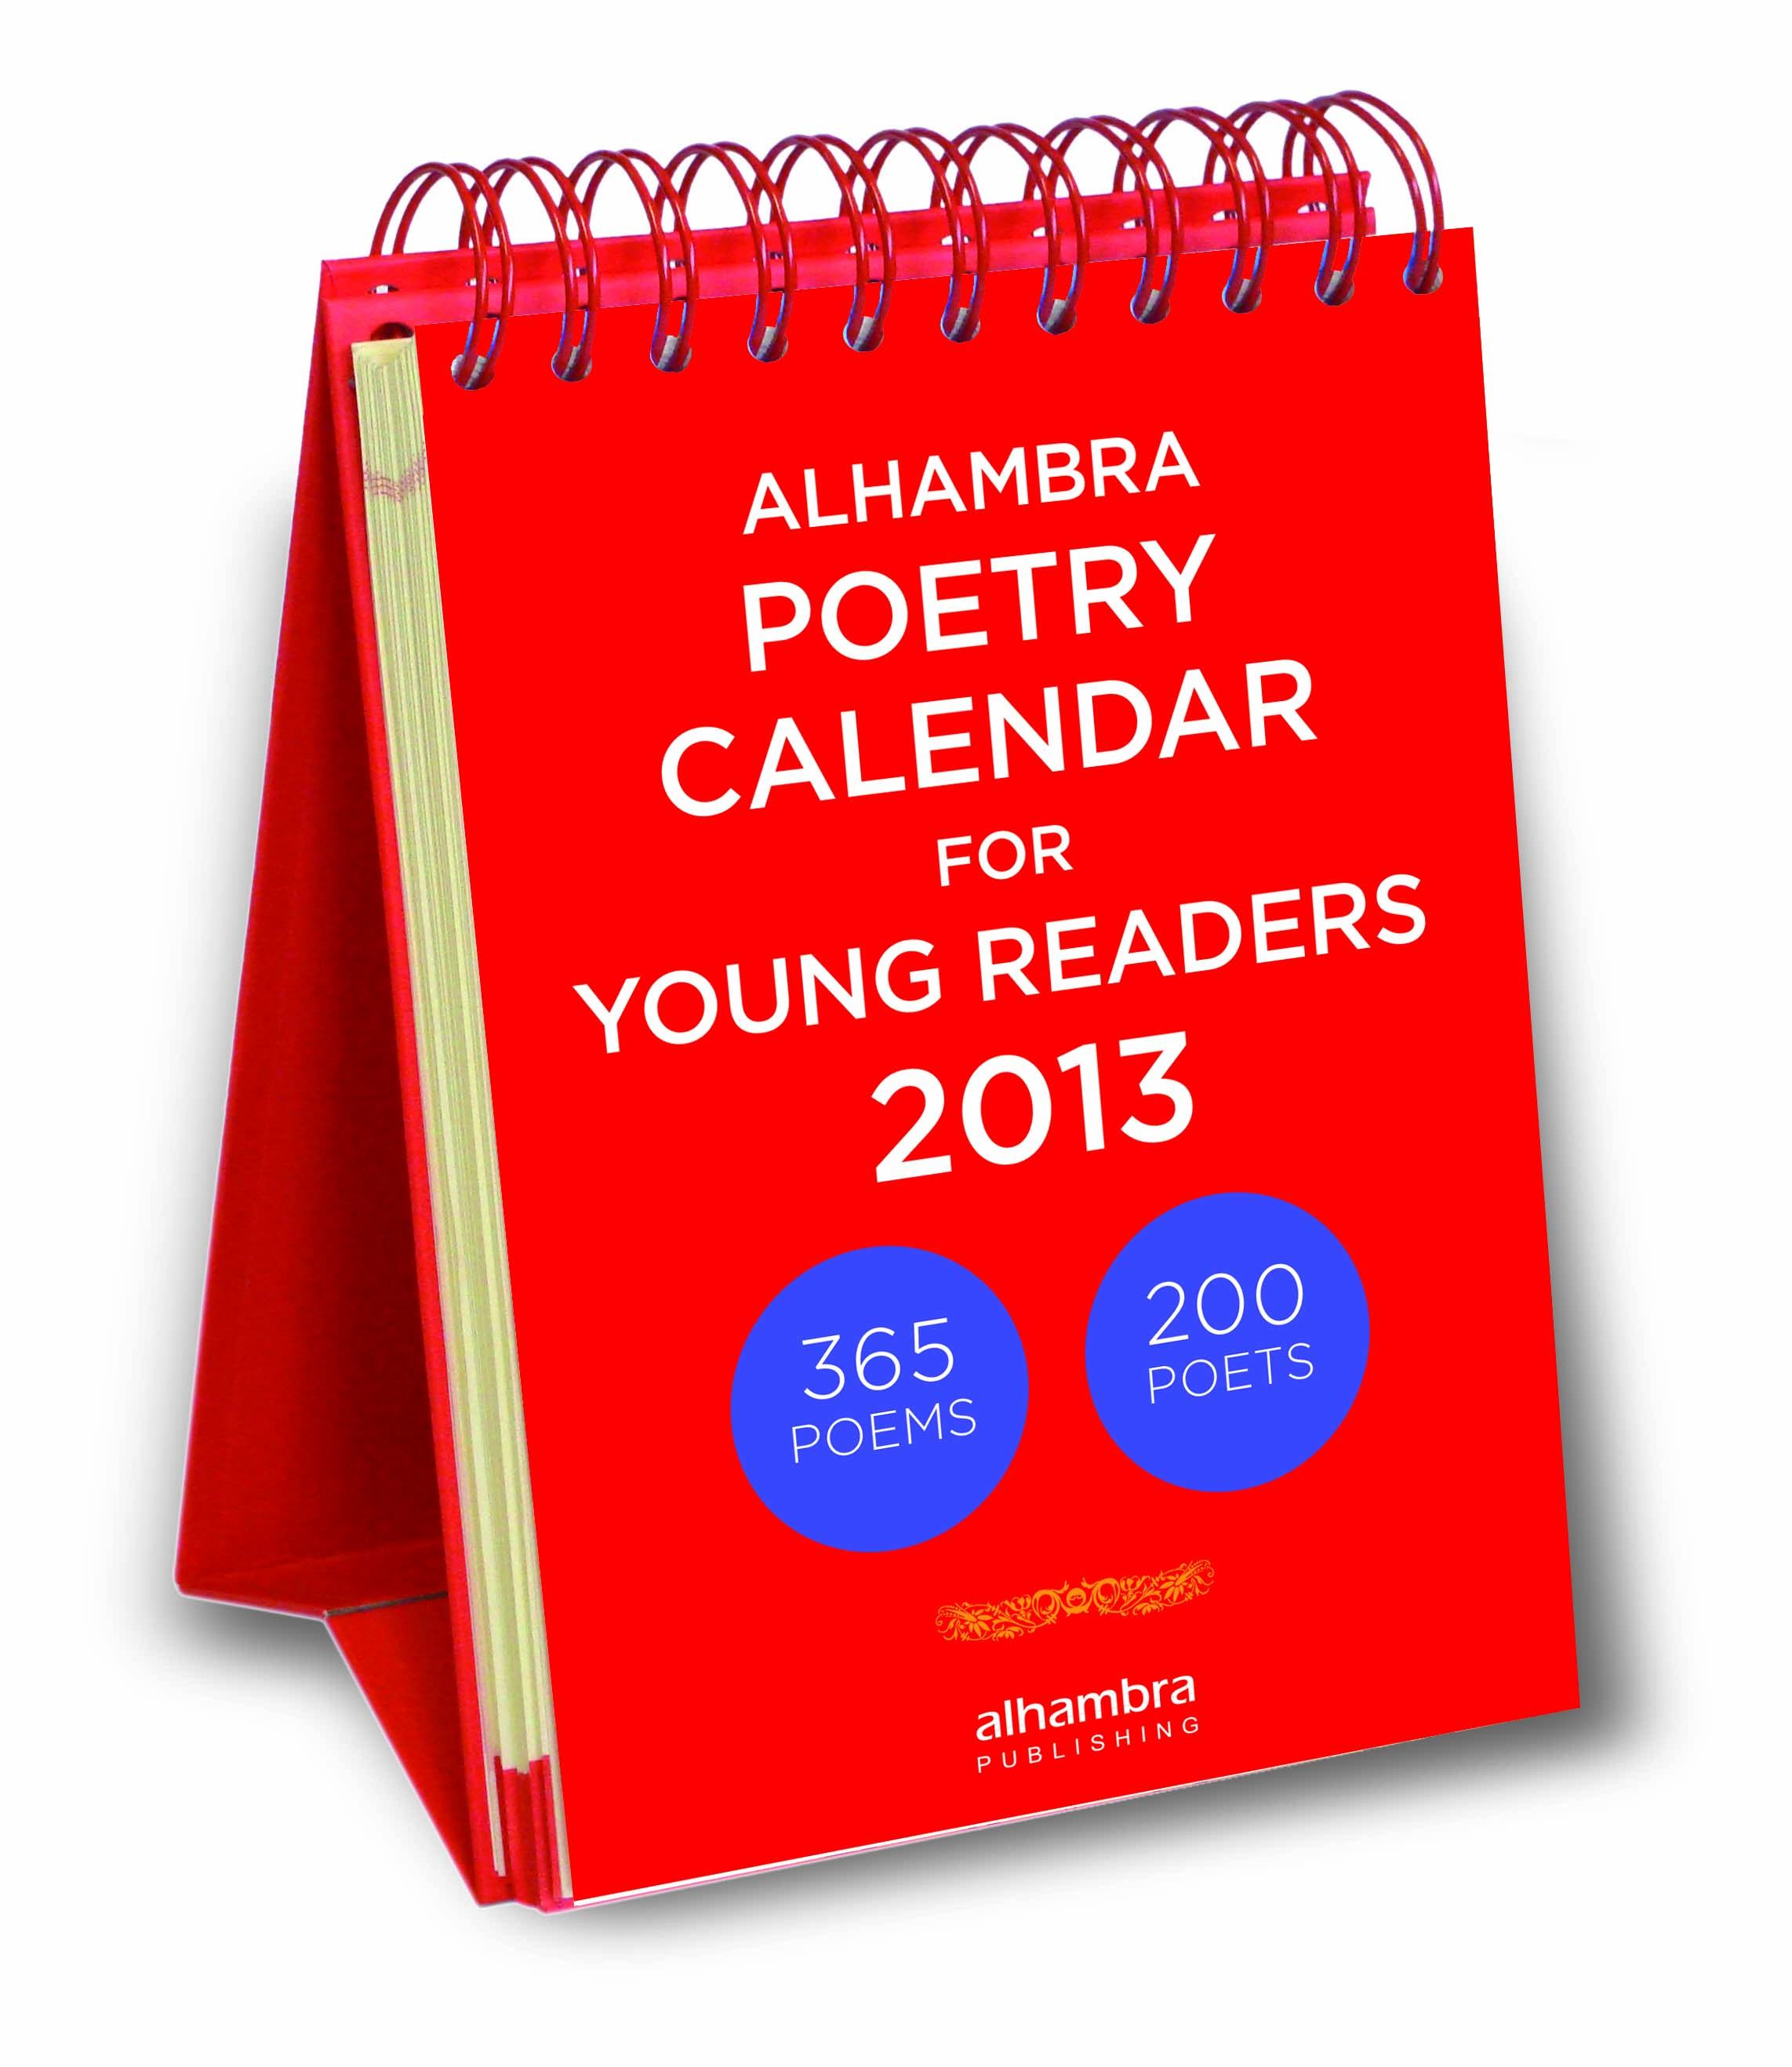 Alhambra Poetry Calendar 2013 for young Readers